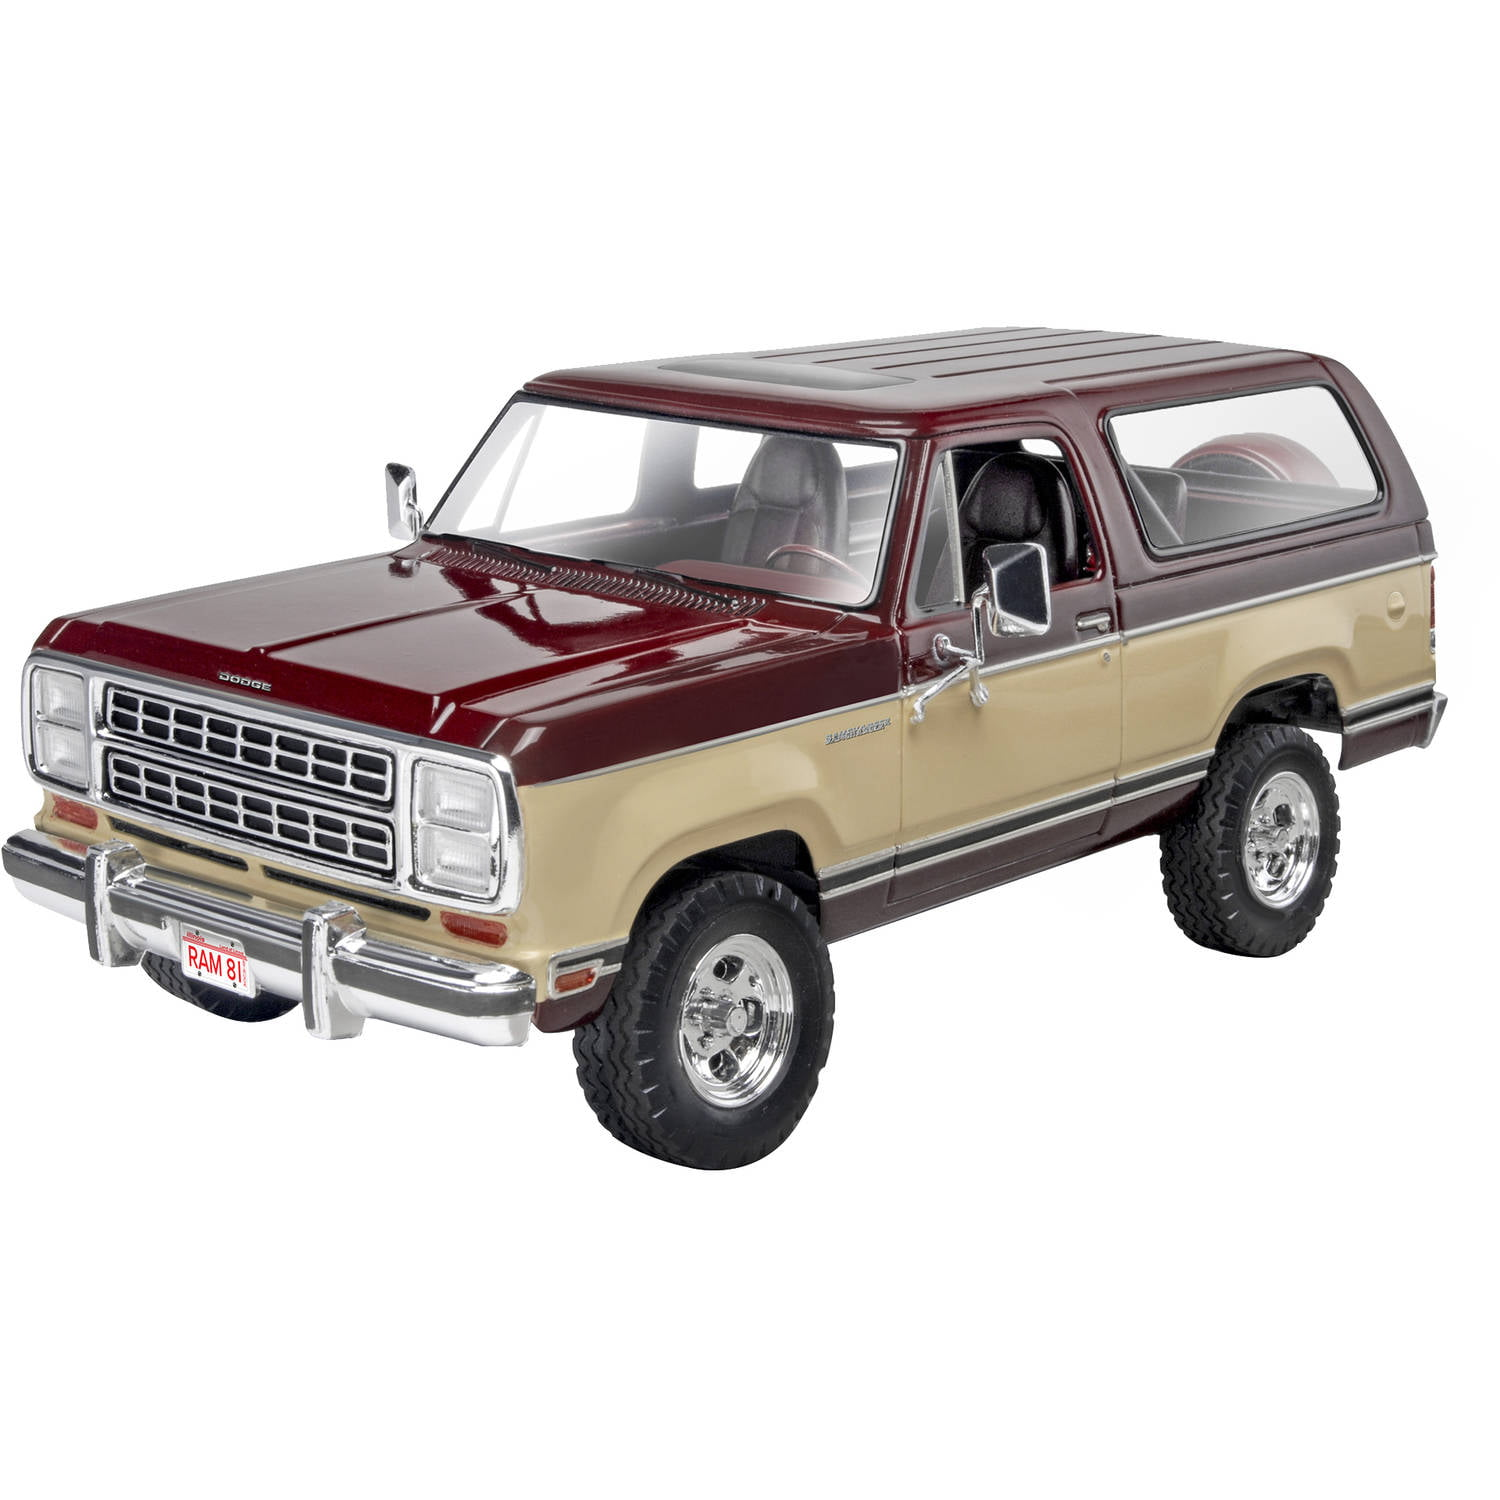 Revell 1:24 1980 Dodge Ramcharger Plastic Model Kit by Revell